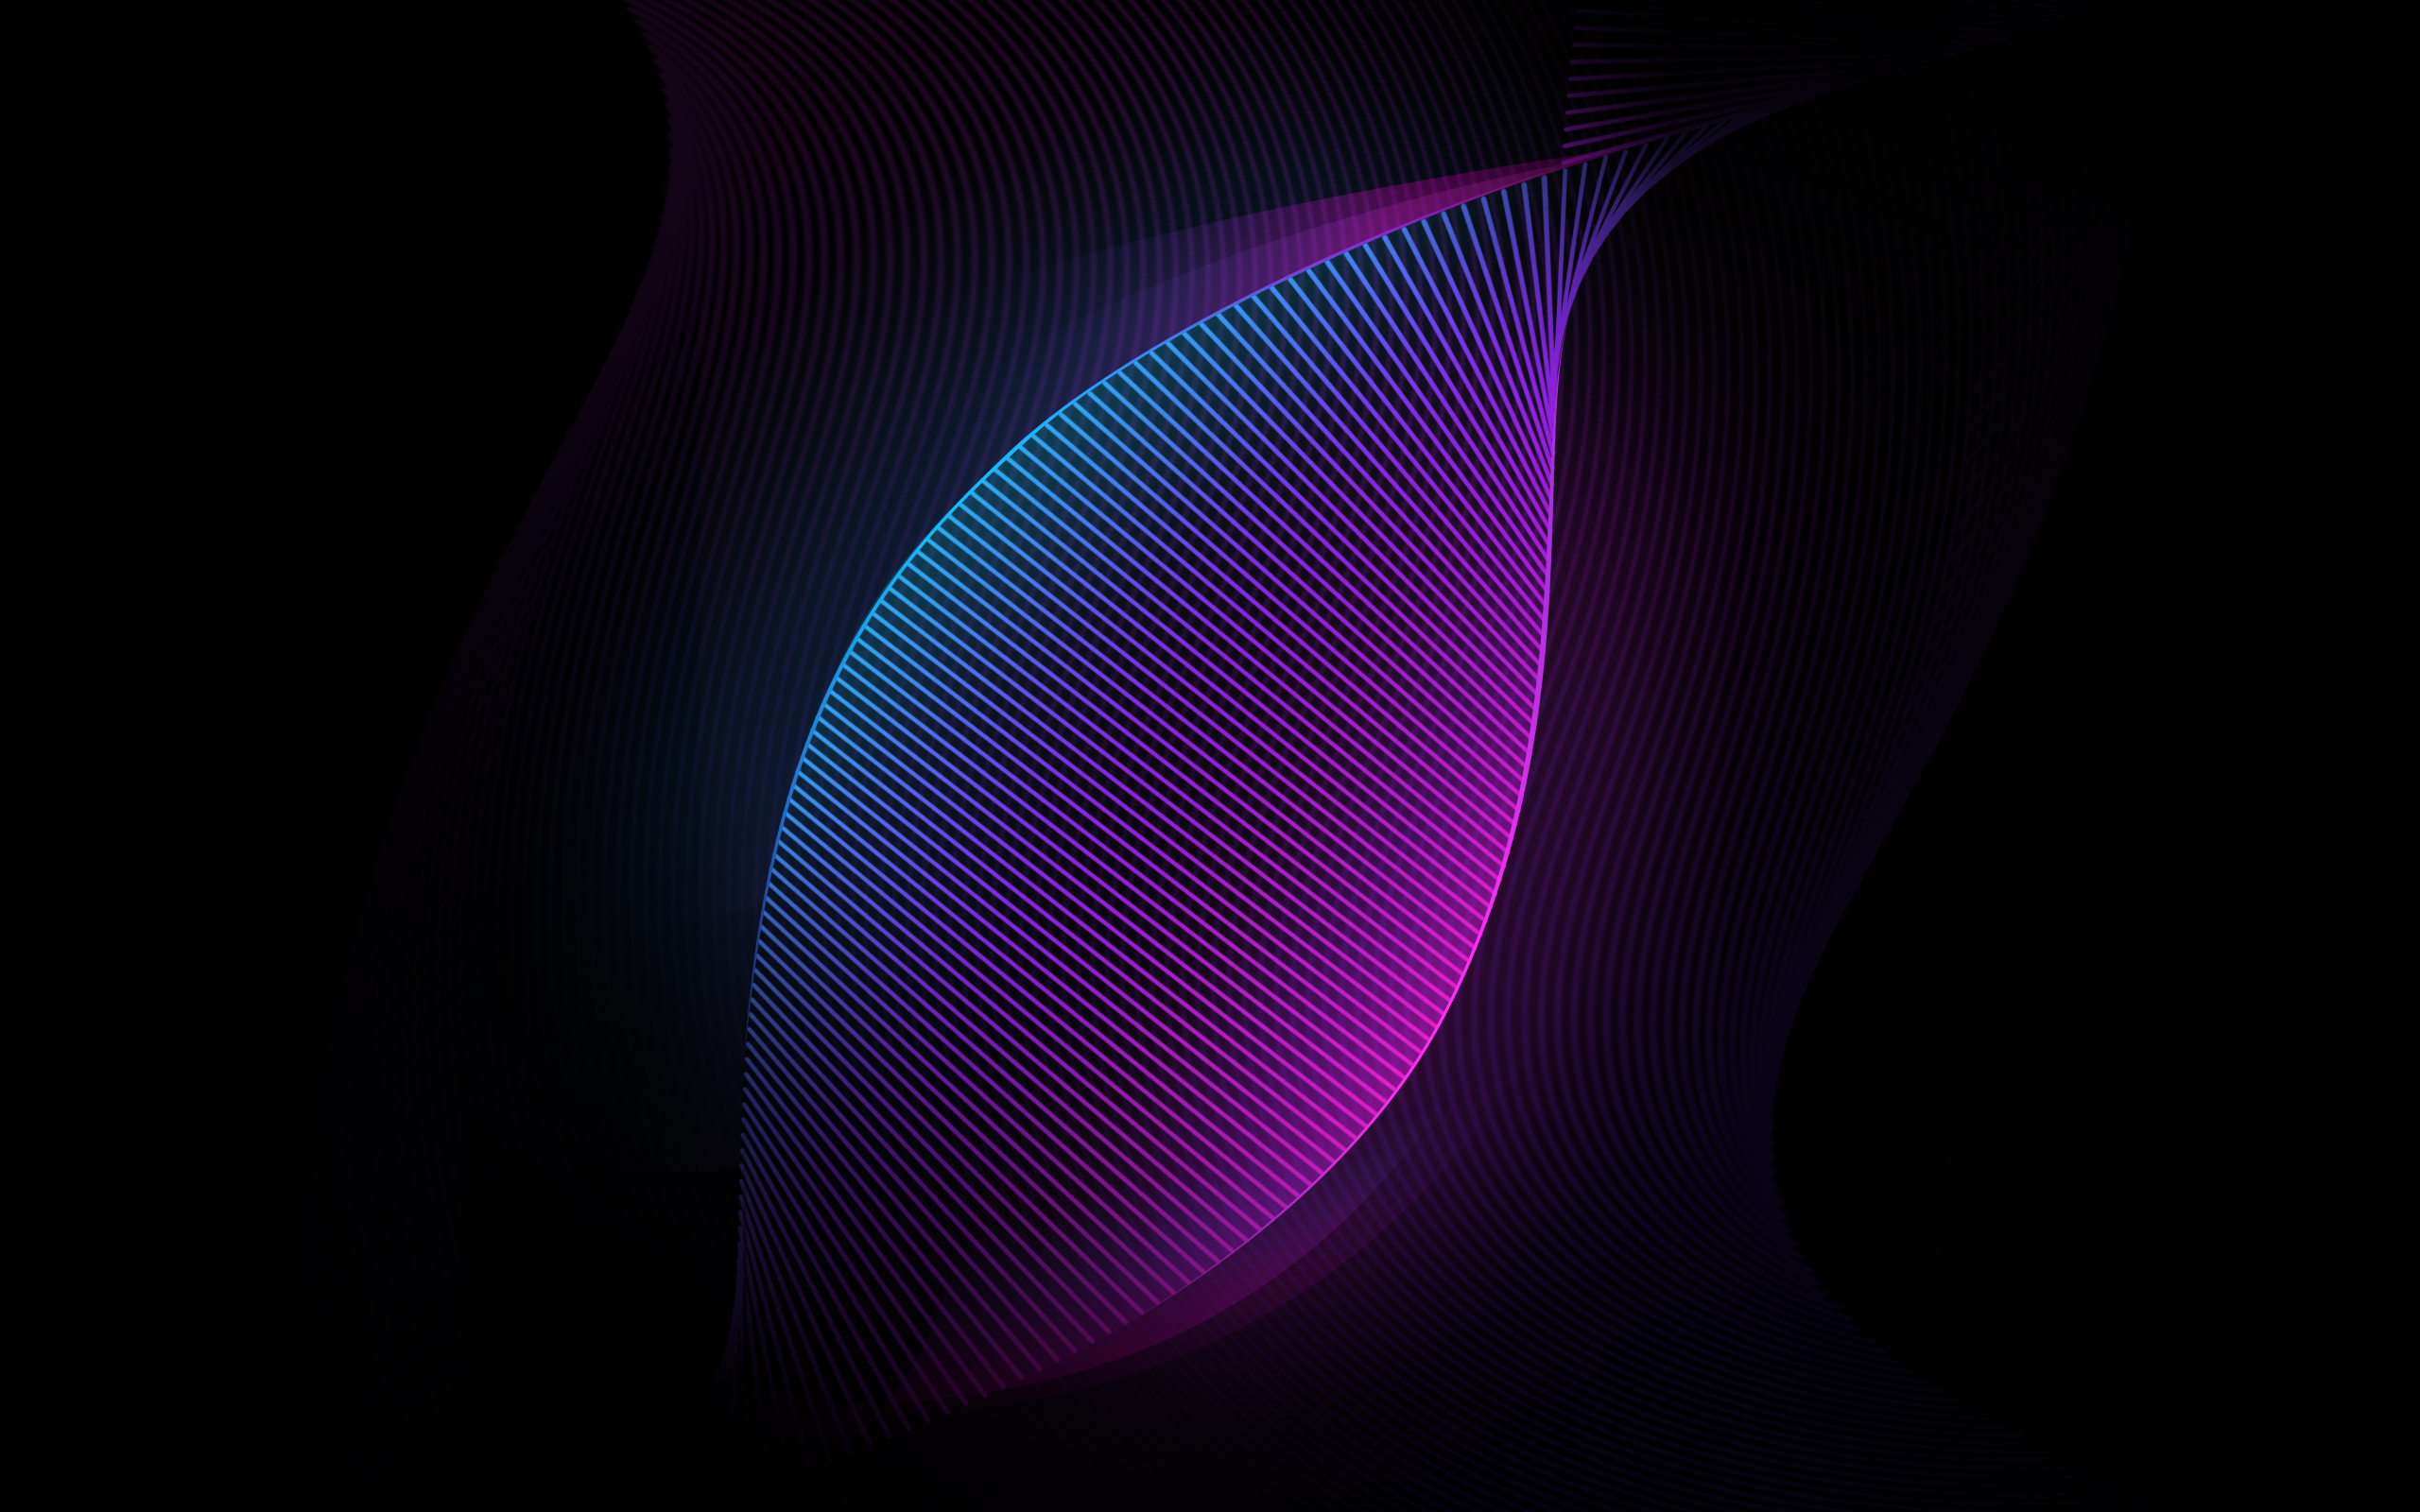 Neon Waves HD209459967 - Neon Waves HD - Waves, U11, Neon